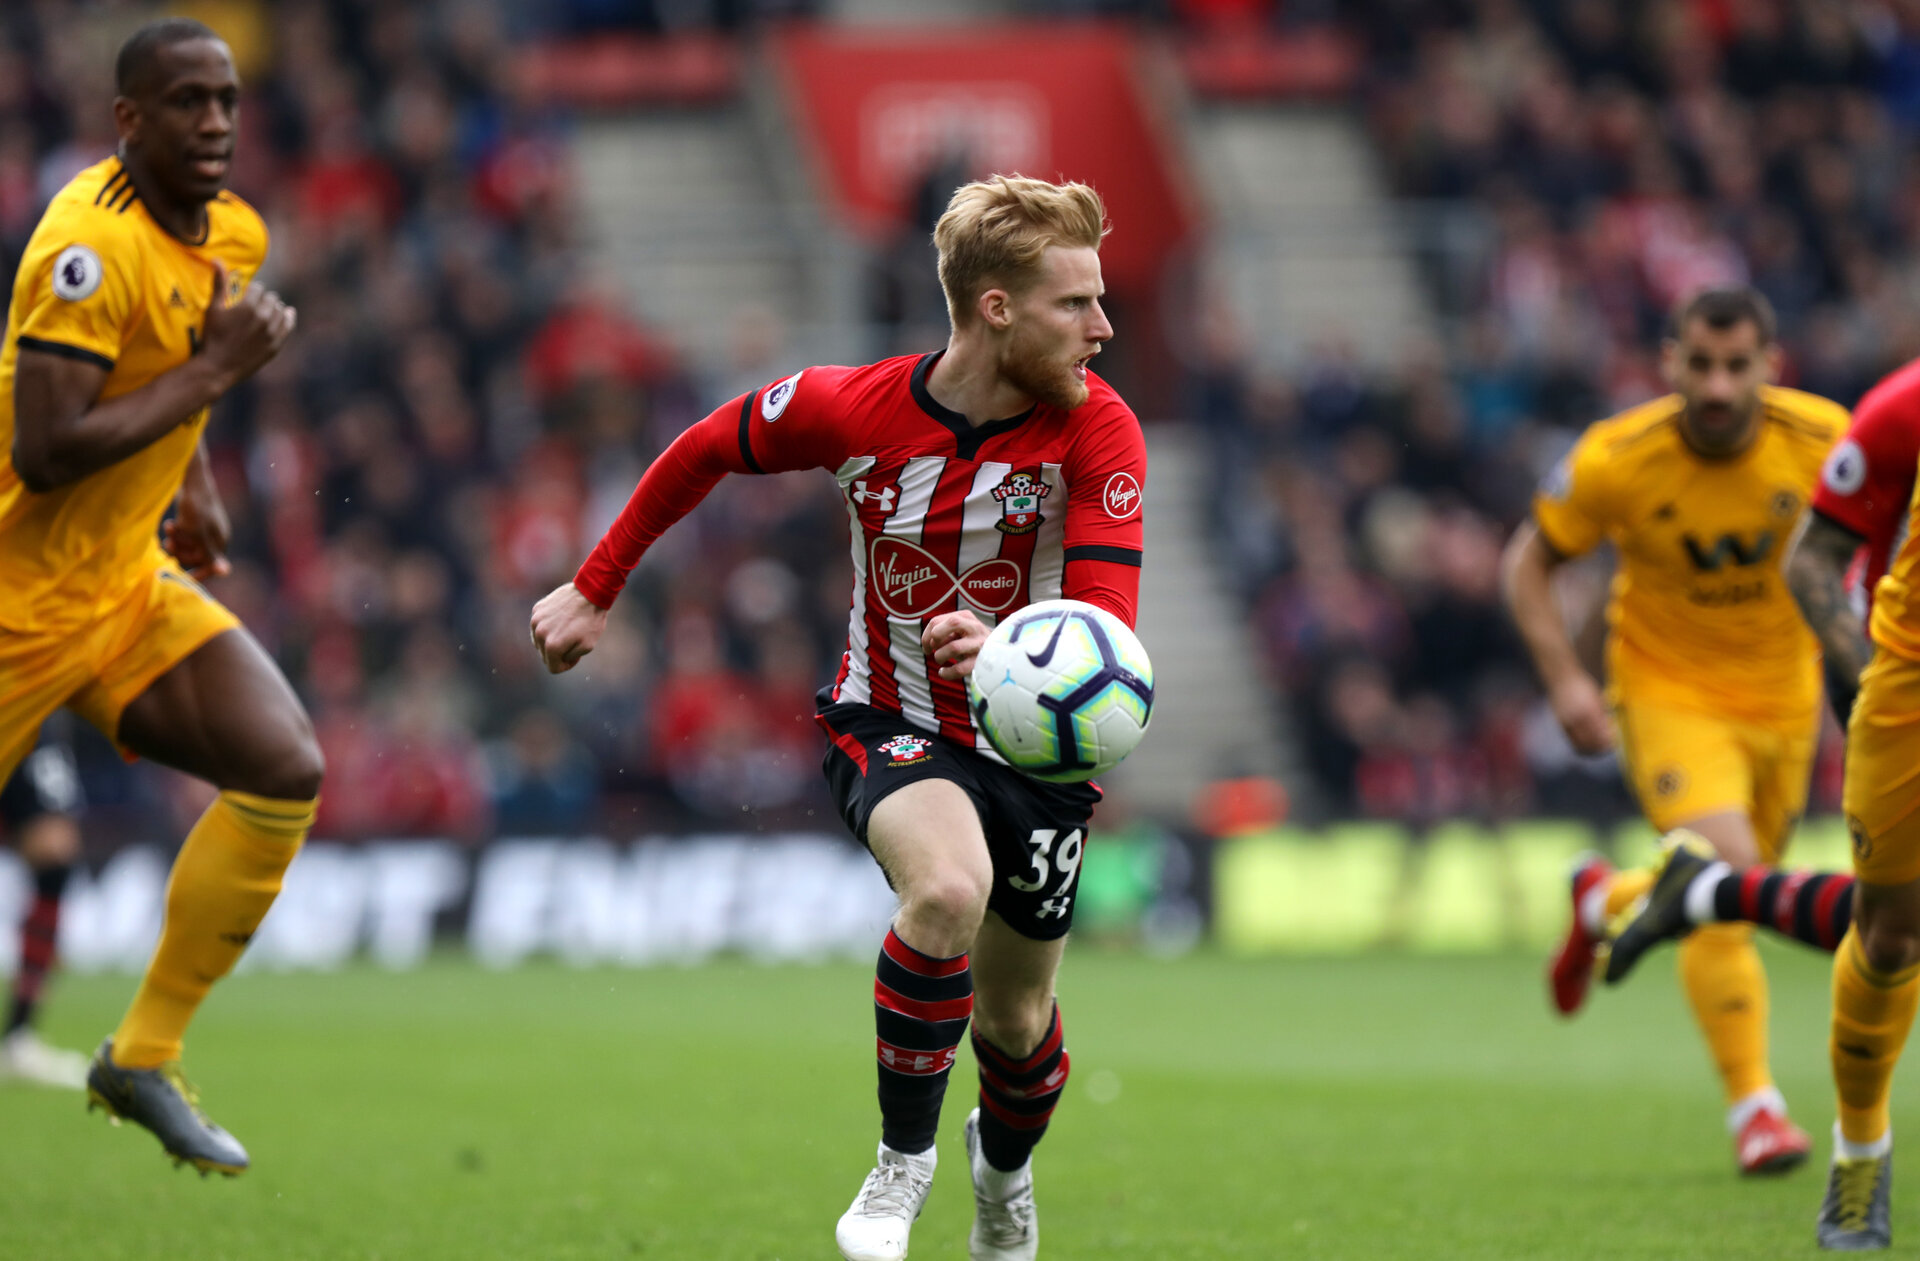 SOUTHAMPTON, ENGLAND - APRIL 13: Josh Sims during the Premier League match between Southampton FC and Wolverhampton Wanderers at St Mary's Stadium on April 13, 2019 in Southampton, United Kingdom. (Photo by Chris Moorhouse/Southampton FC via Getty Images)